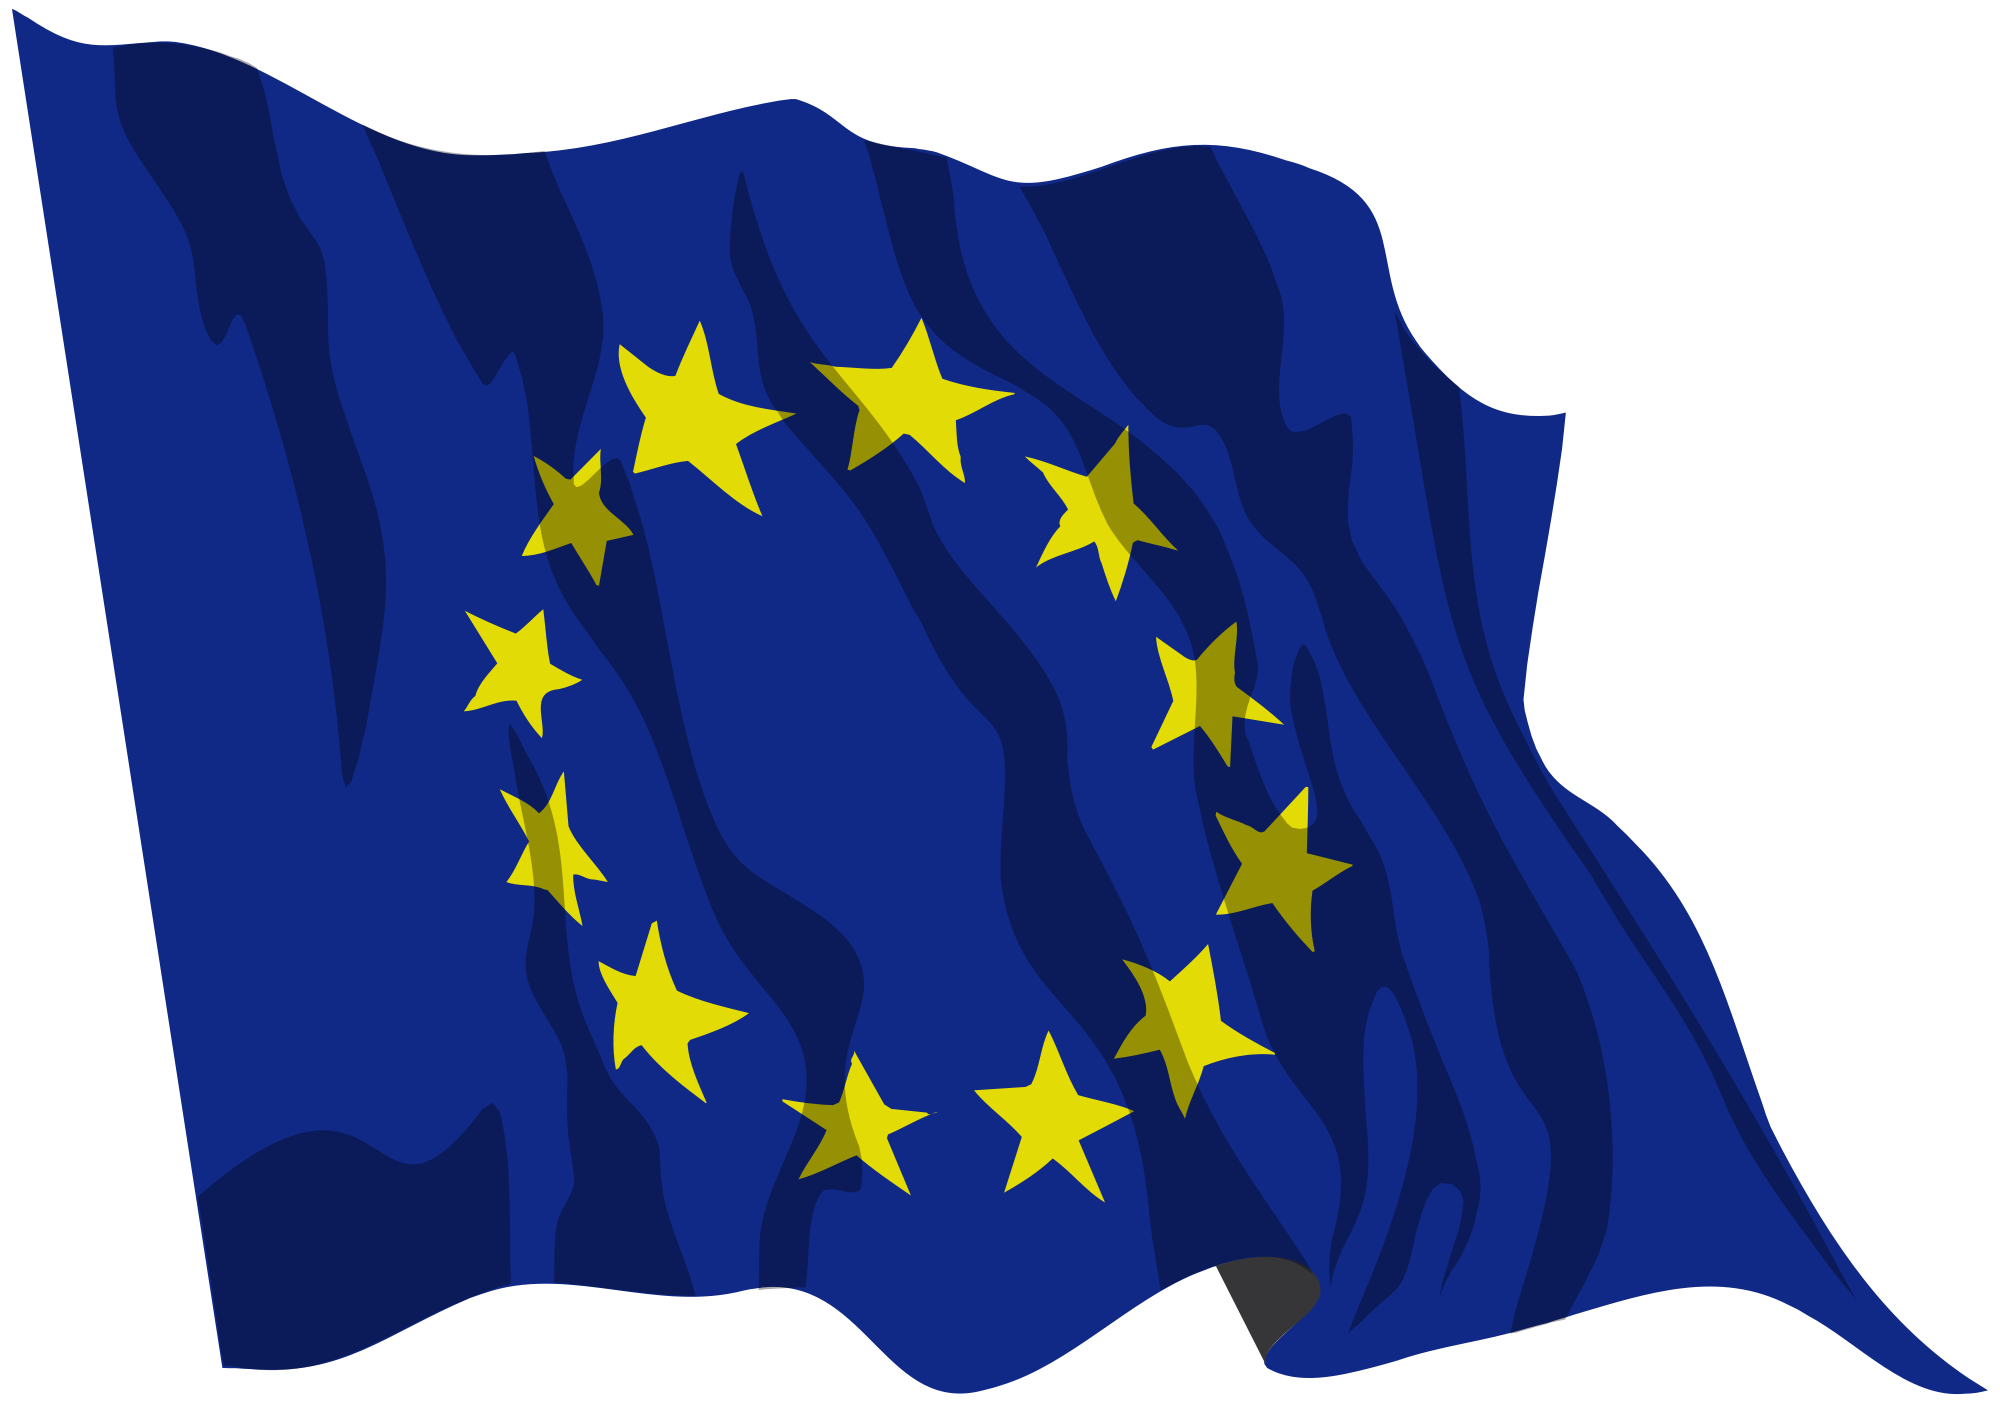 Svg flags wavy. File flag of europe